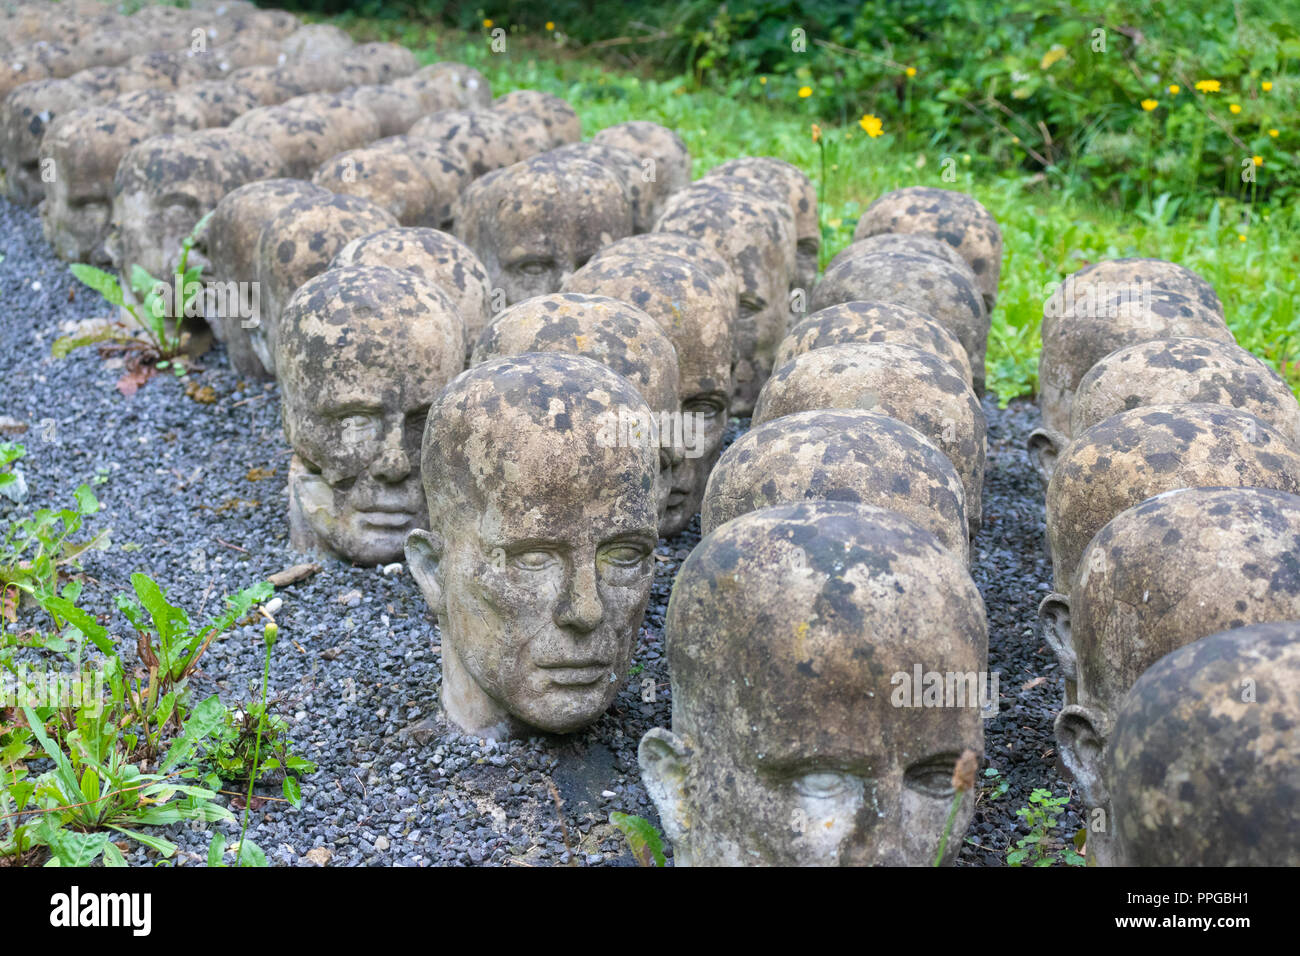 Holocaust Memorial of Rows of Heads on the way to Mauthausen Concentration Camp Austria. - Stock Image